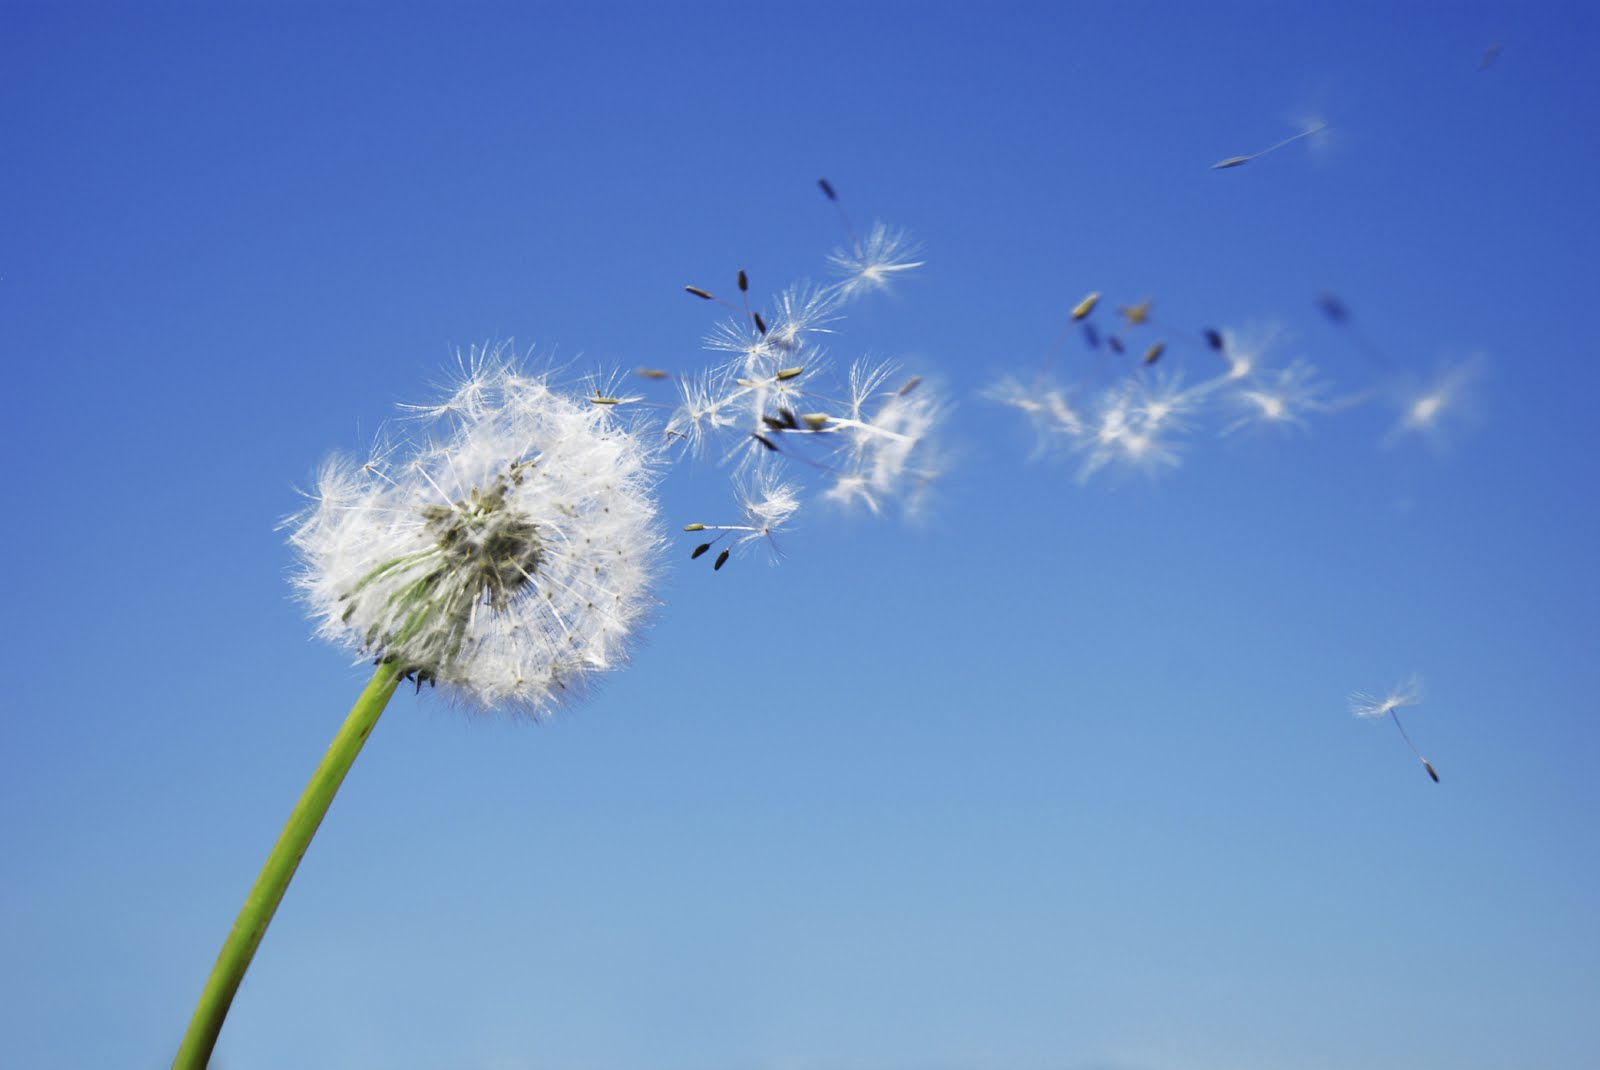 a dandelion being blown by the wind with a blue background